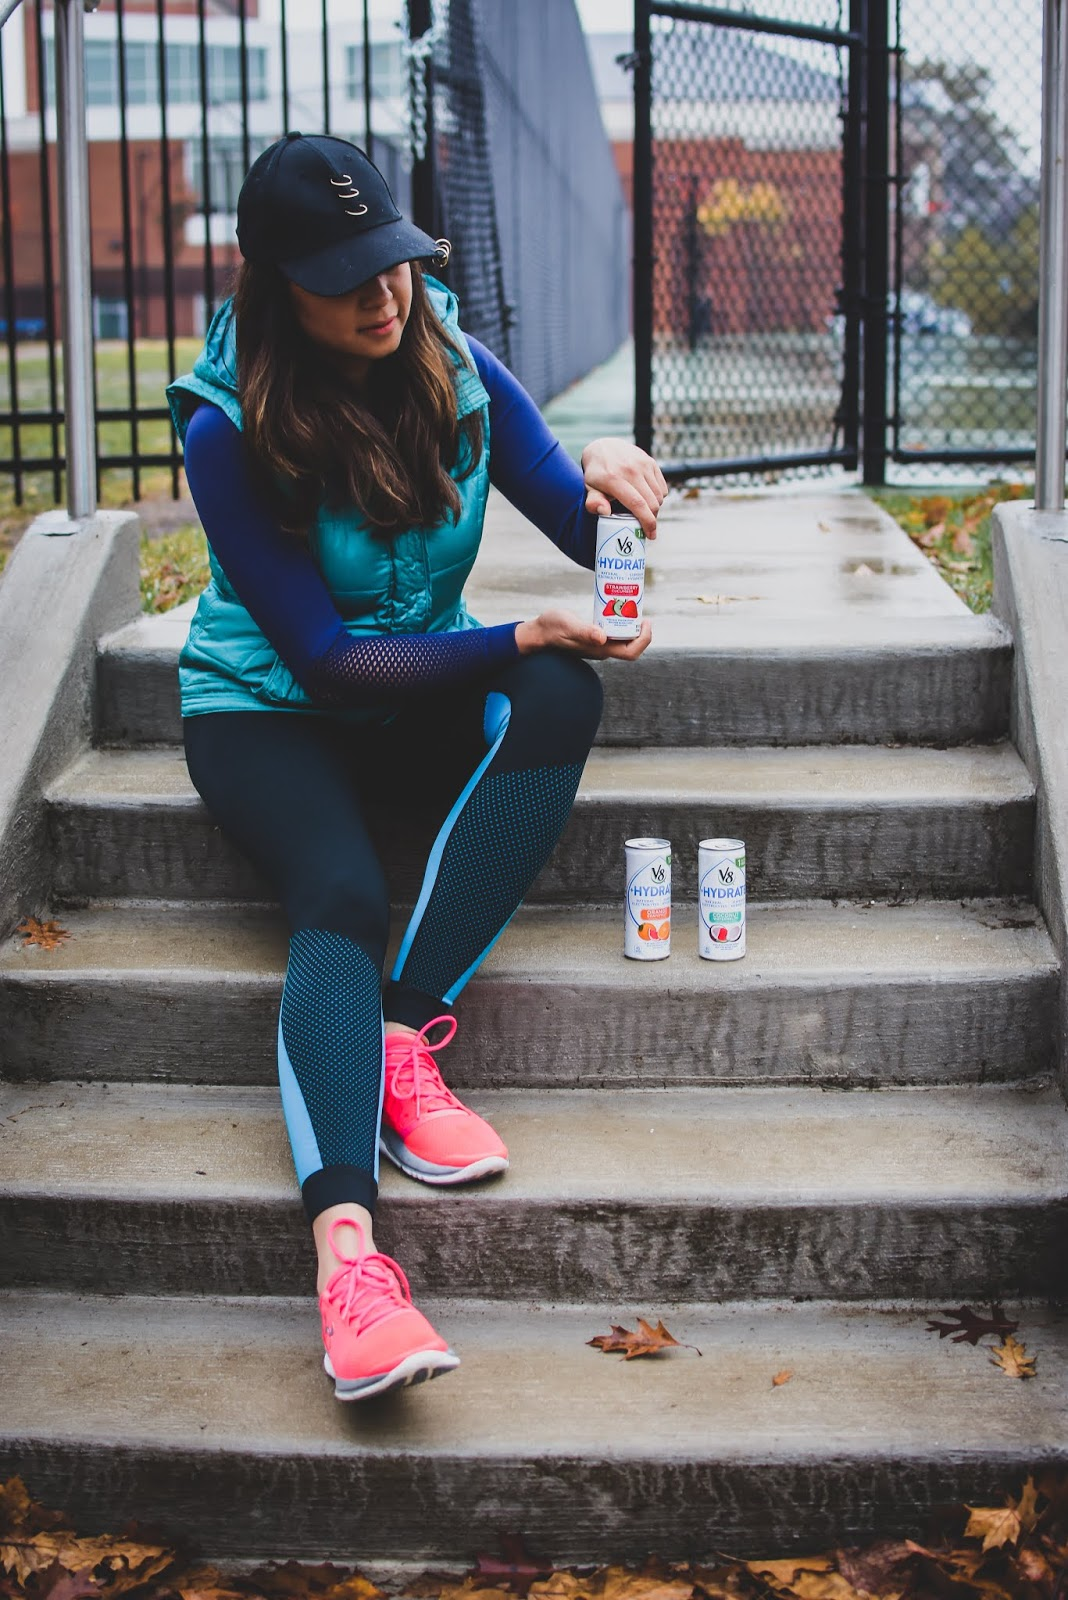 V8+hydrate drink, lifestyle, fitness blogger, healthy drink, mom blogger, dc blogger, cocktaiul/moicktail, low sugar drink, vegetable drink, photos, myriad musings